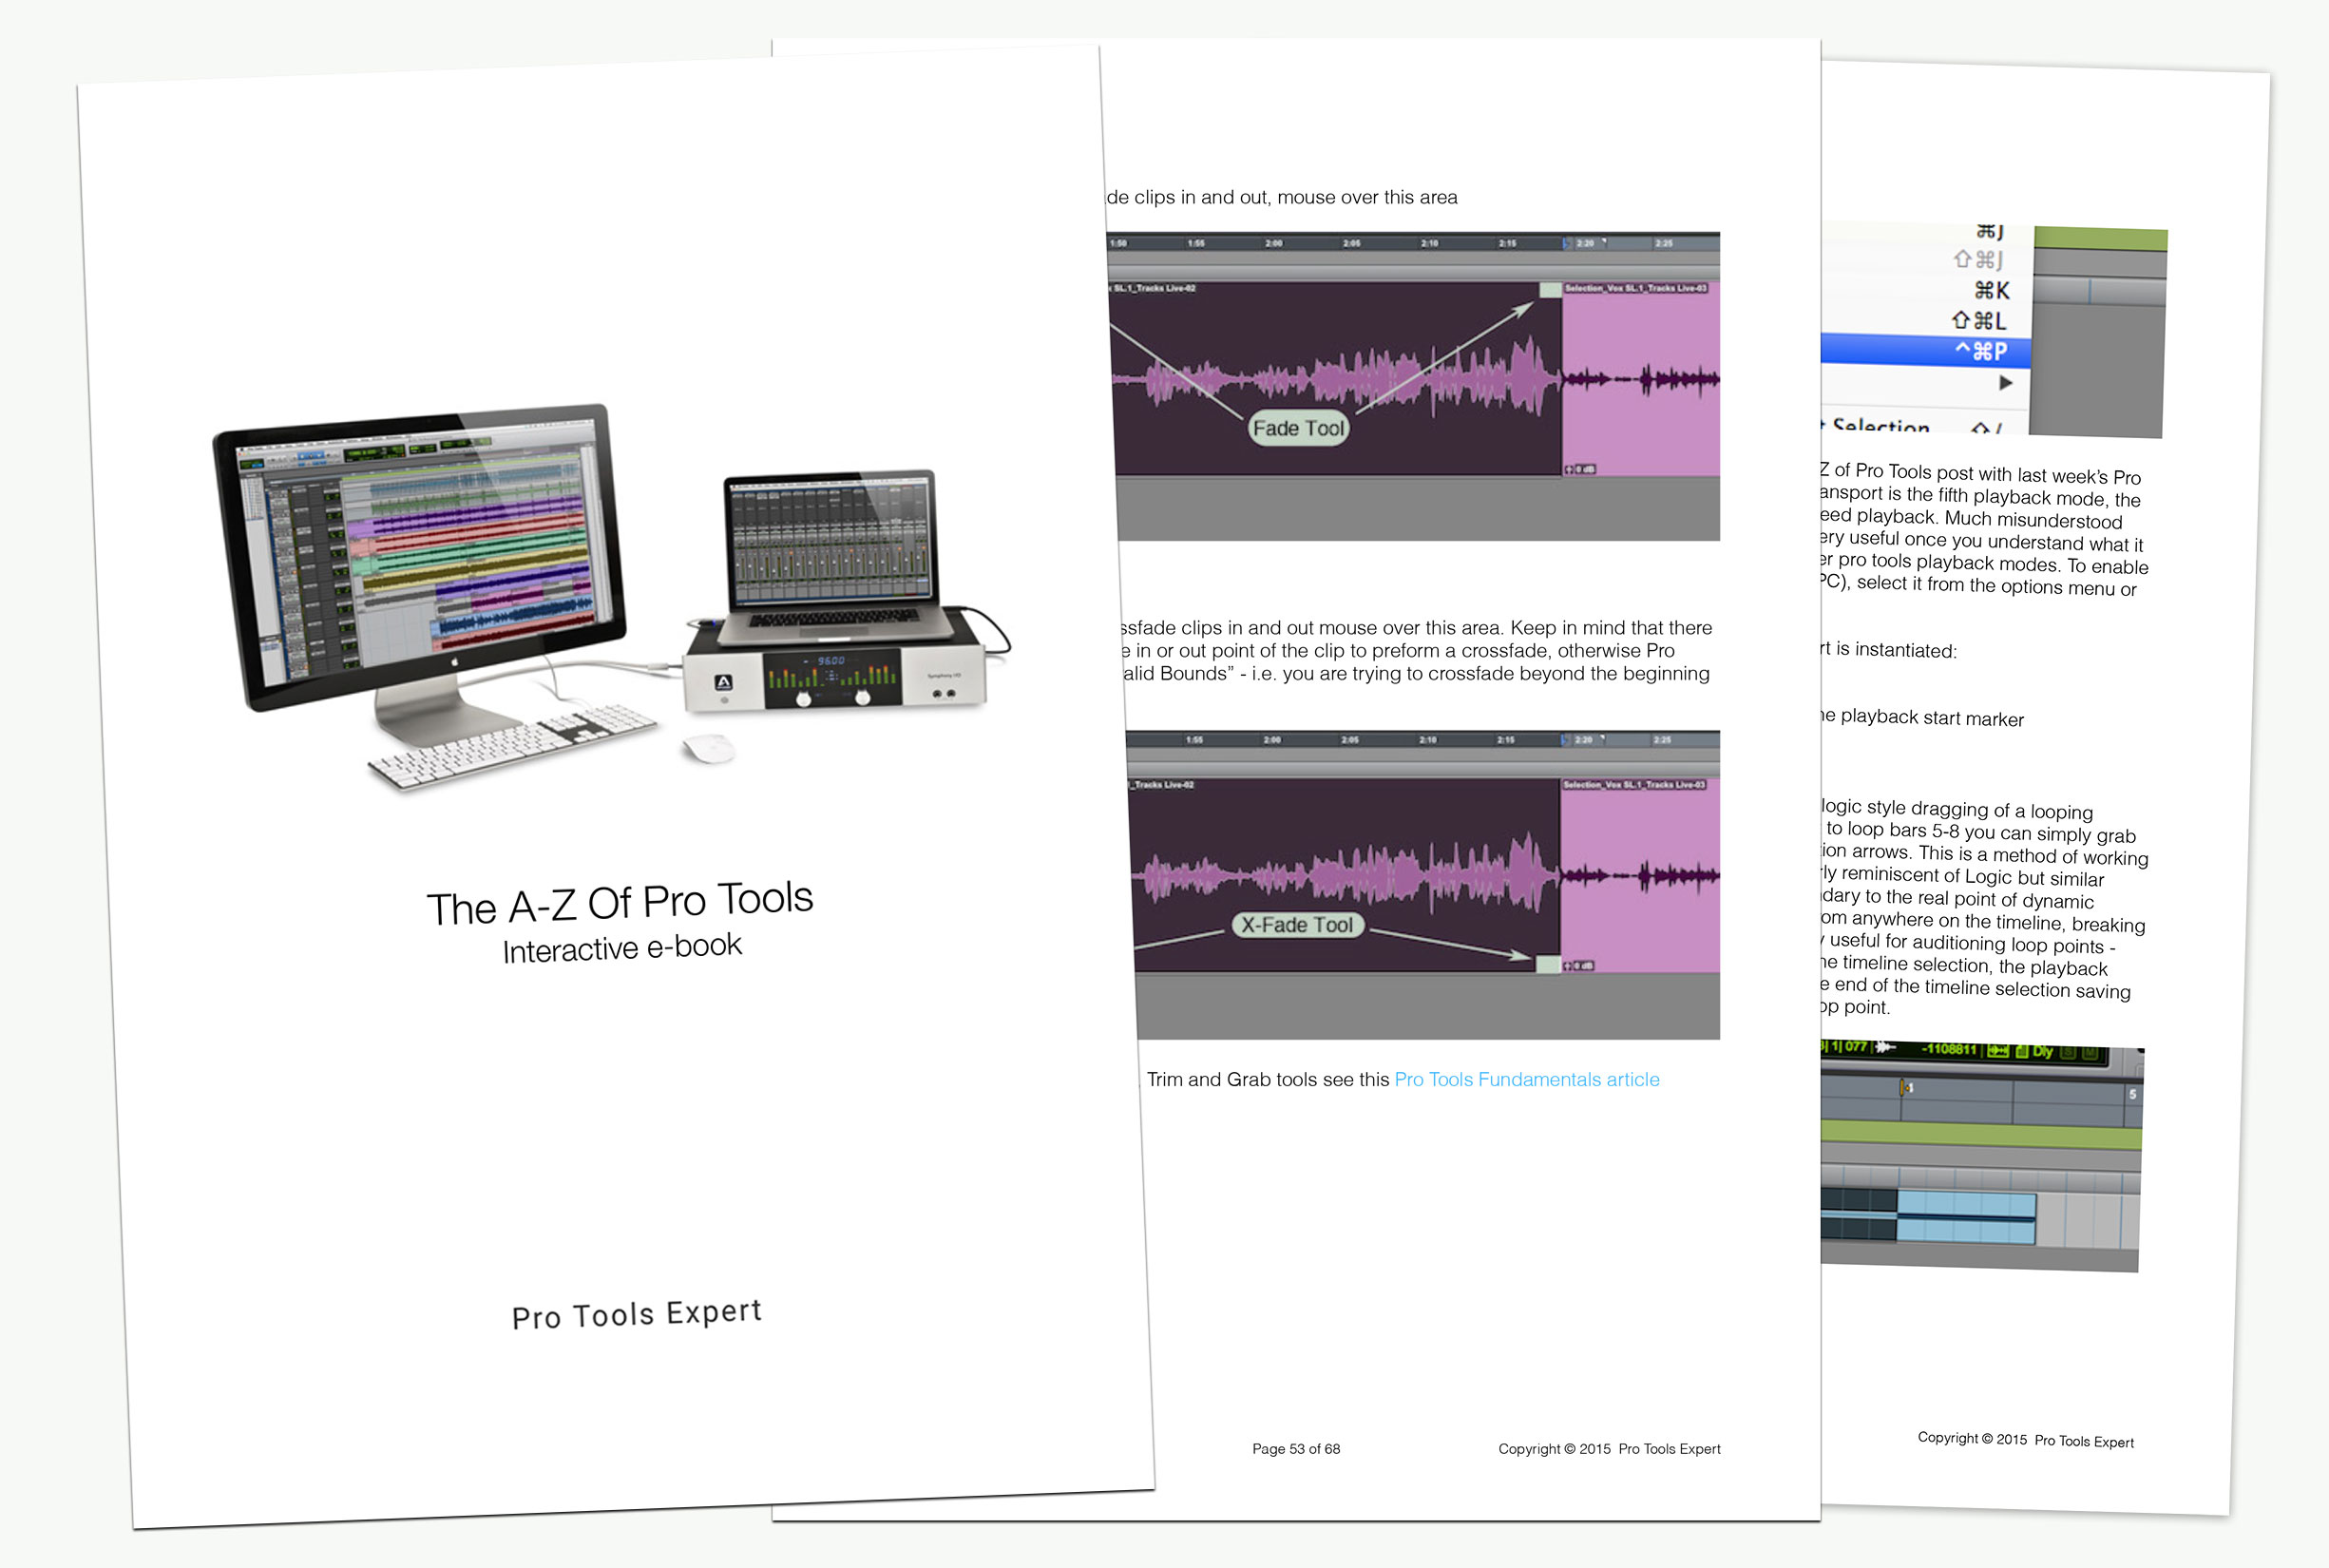 The A-Z Of Pro Tools eBook